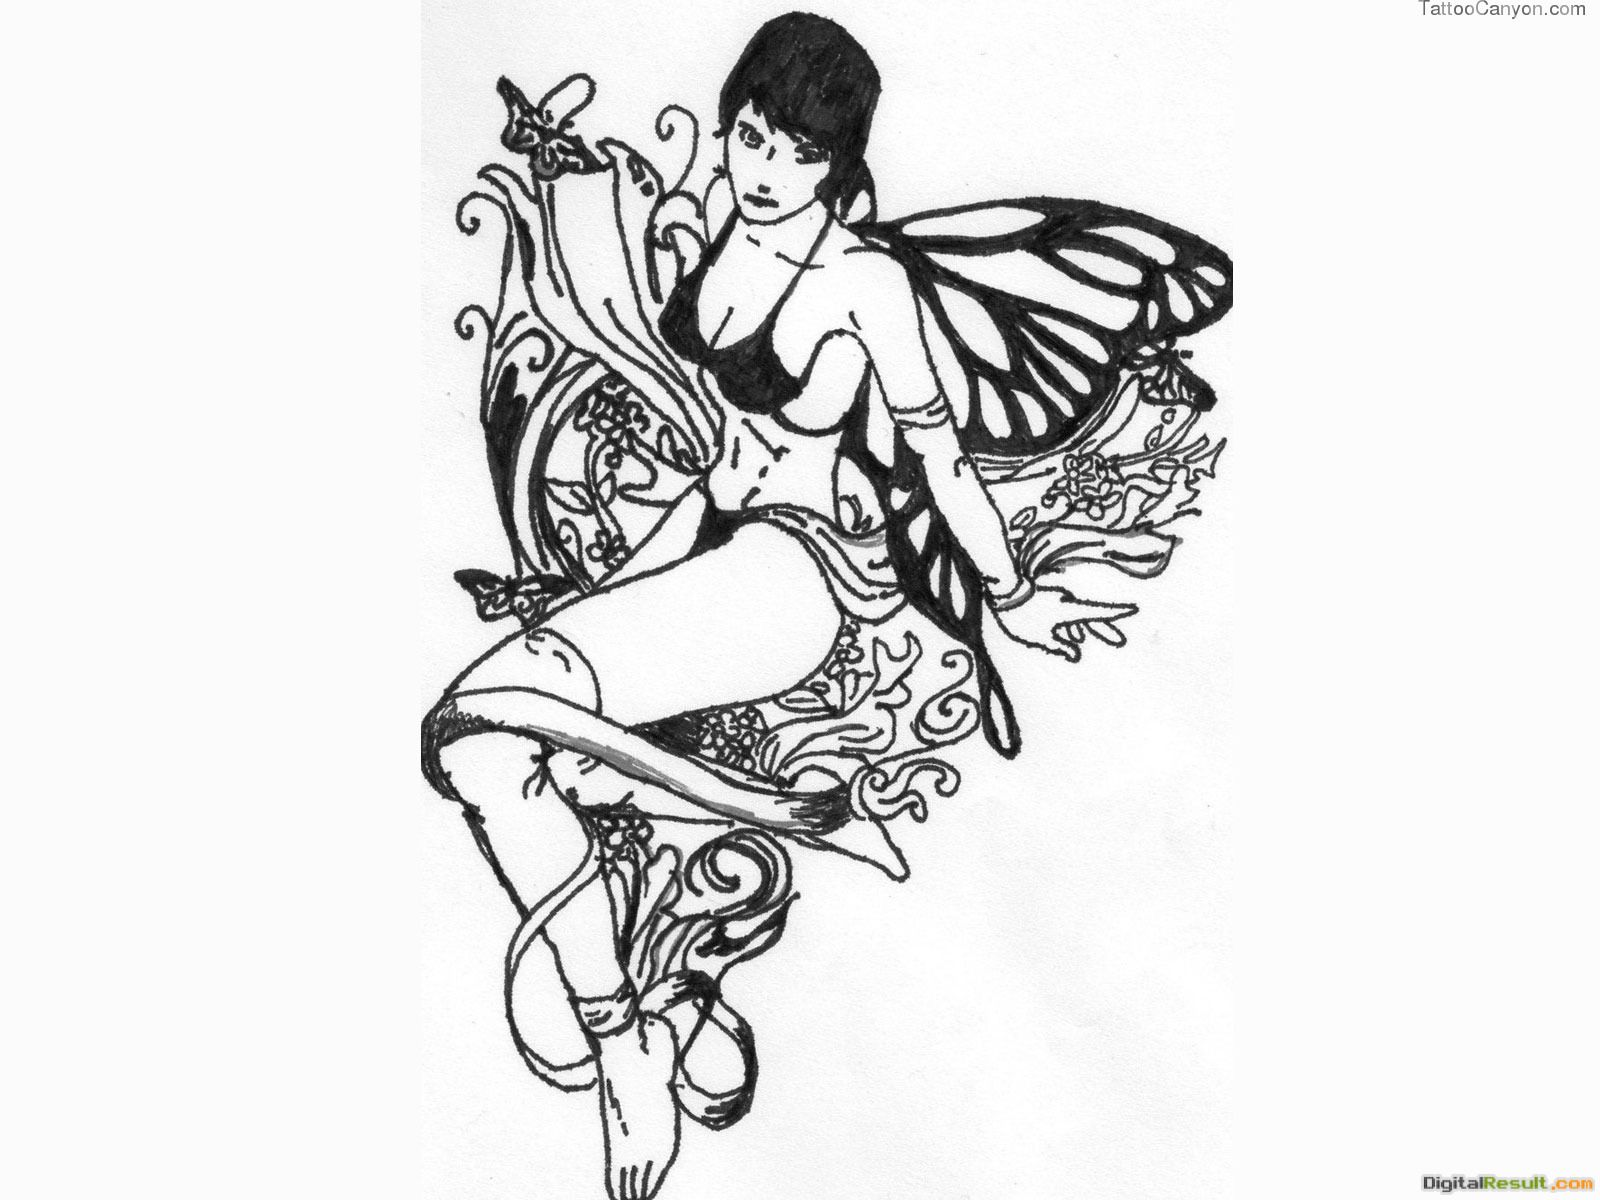 Fairy Tattoo Design Black And White Jpg Name 1327840849art Fairy 1392